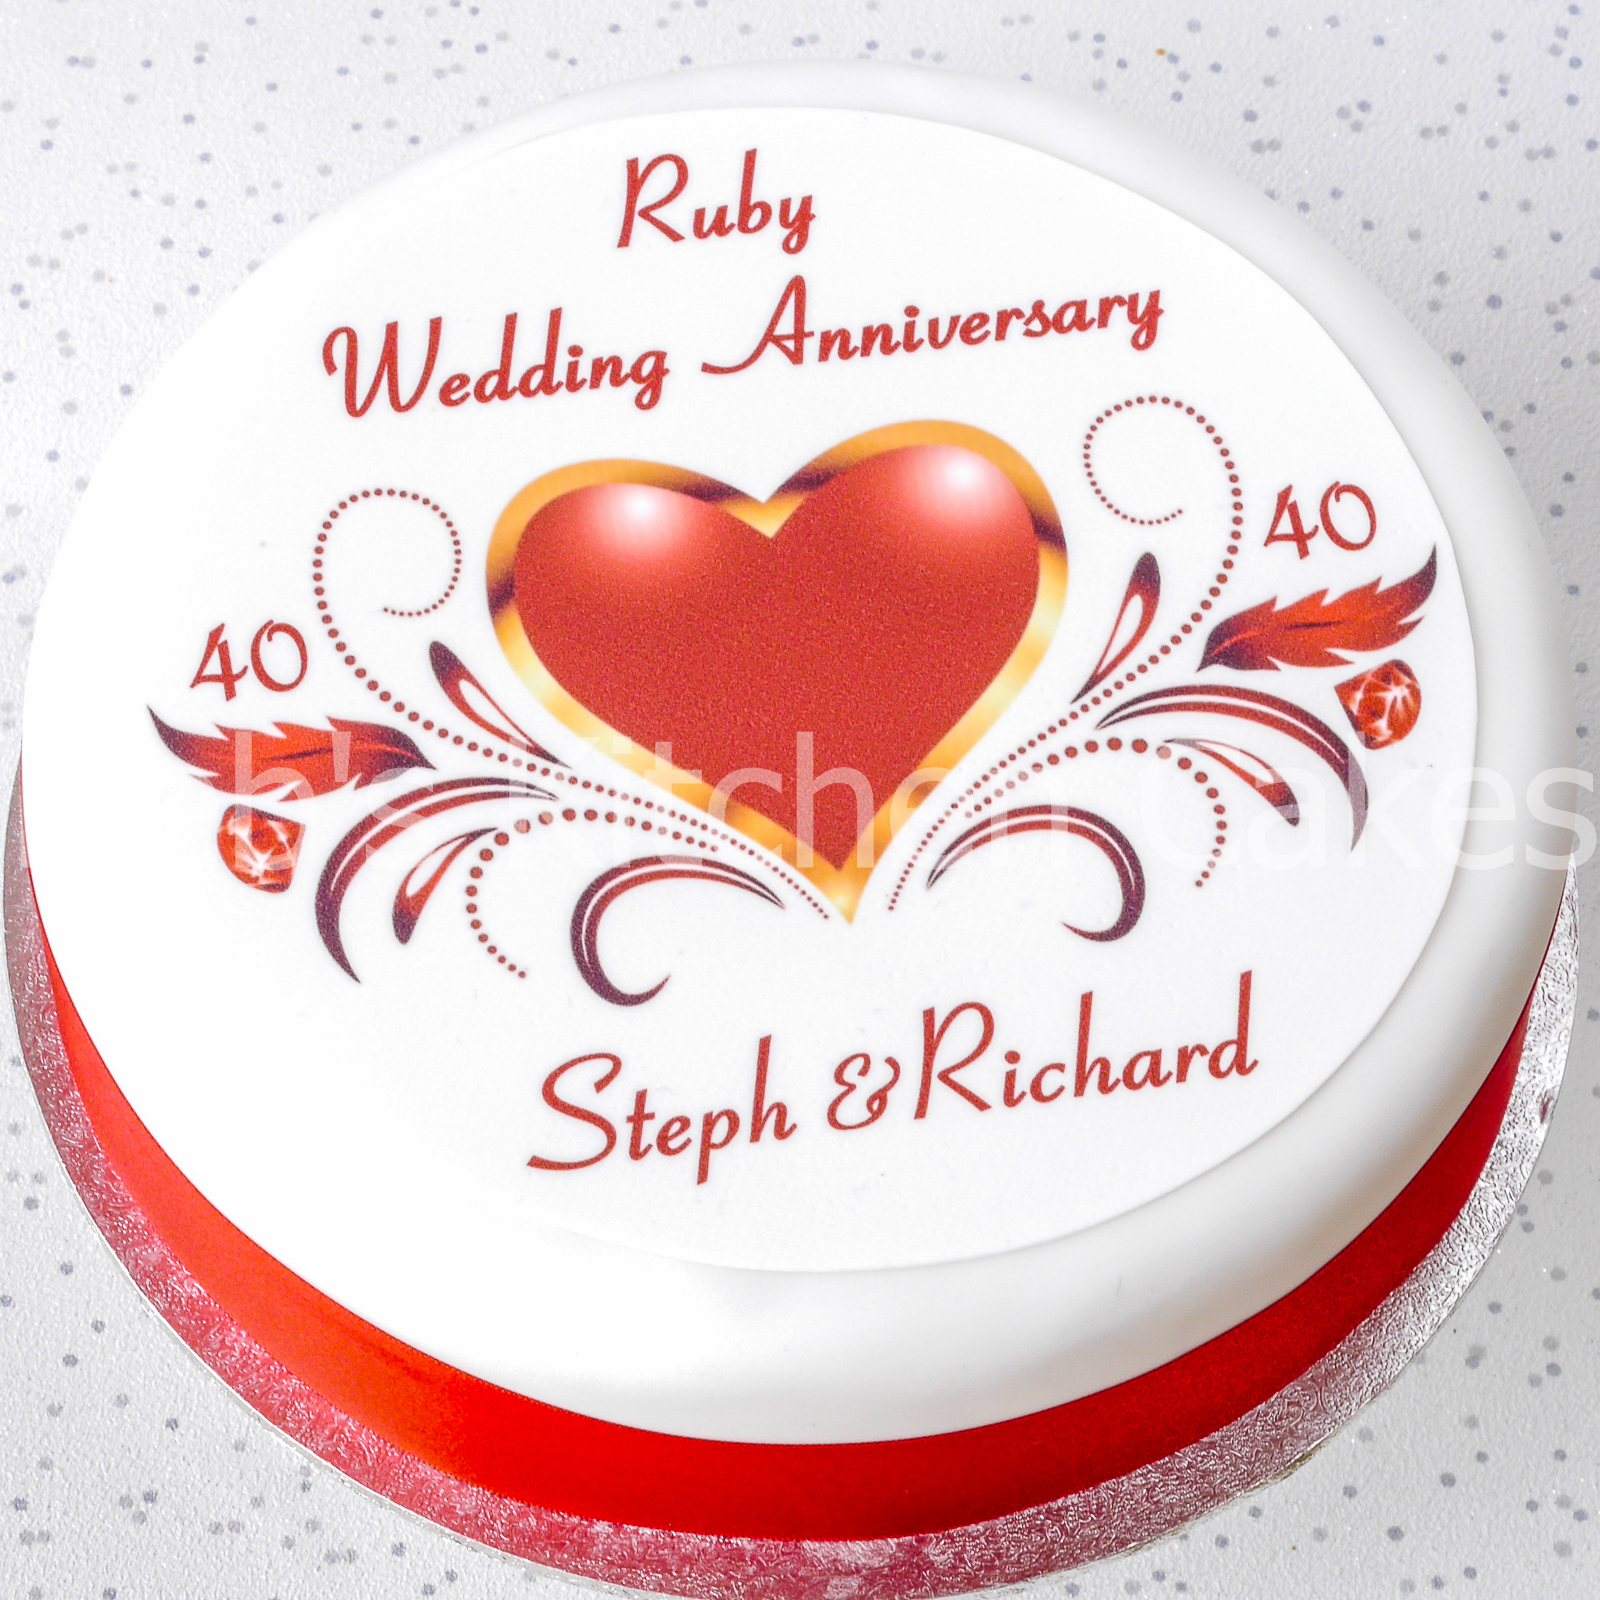 Cake Toppers :: Weddings, Engagements & Anniversaries.